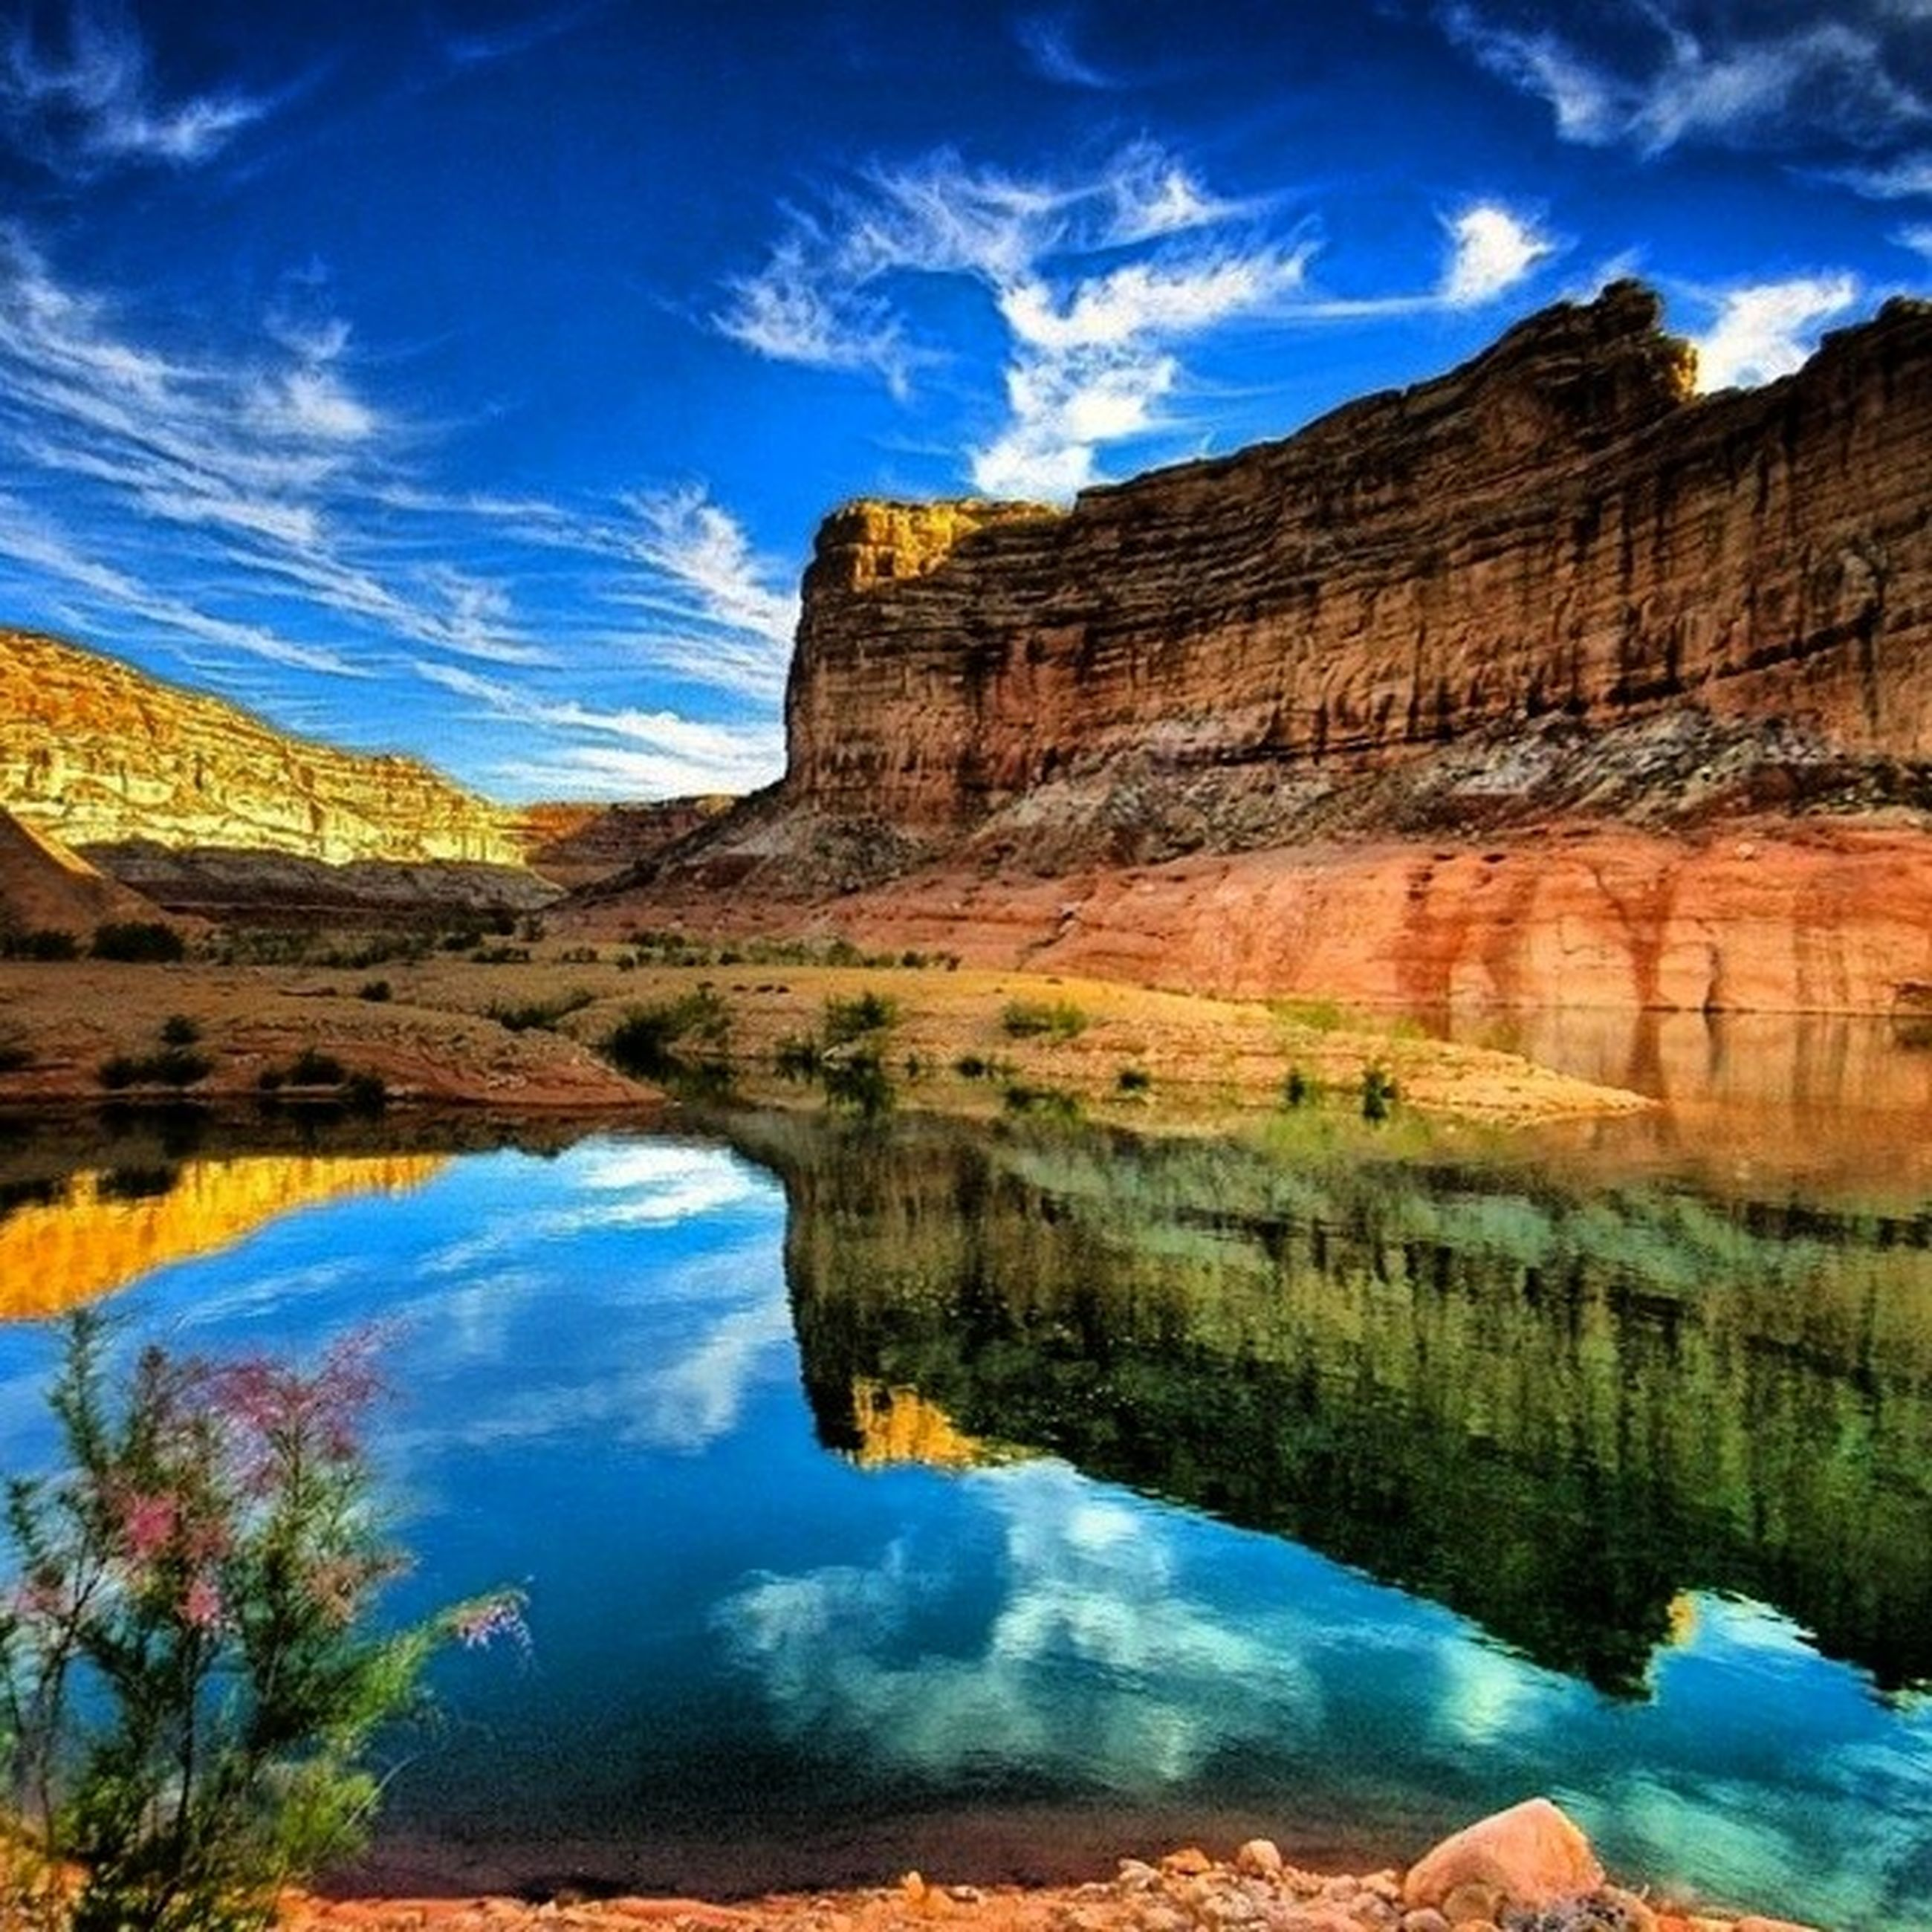 tranquil scene, tranquility, water, scenics, reflection, sky, beauty in nature, lake, nature, blue, cloud, cloud - sky, idyllic, rock formation, landscape, rock - object, standing water, mountain, non-urban scene, physical geography